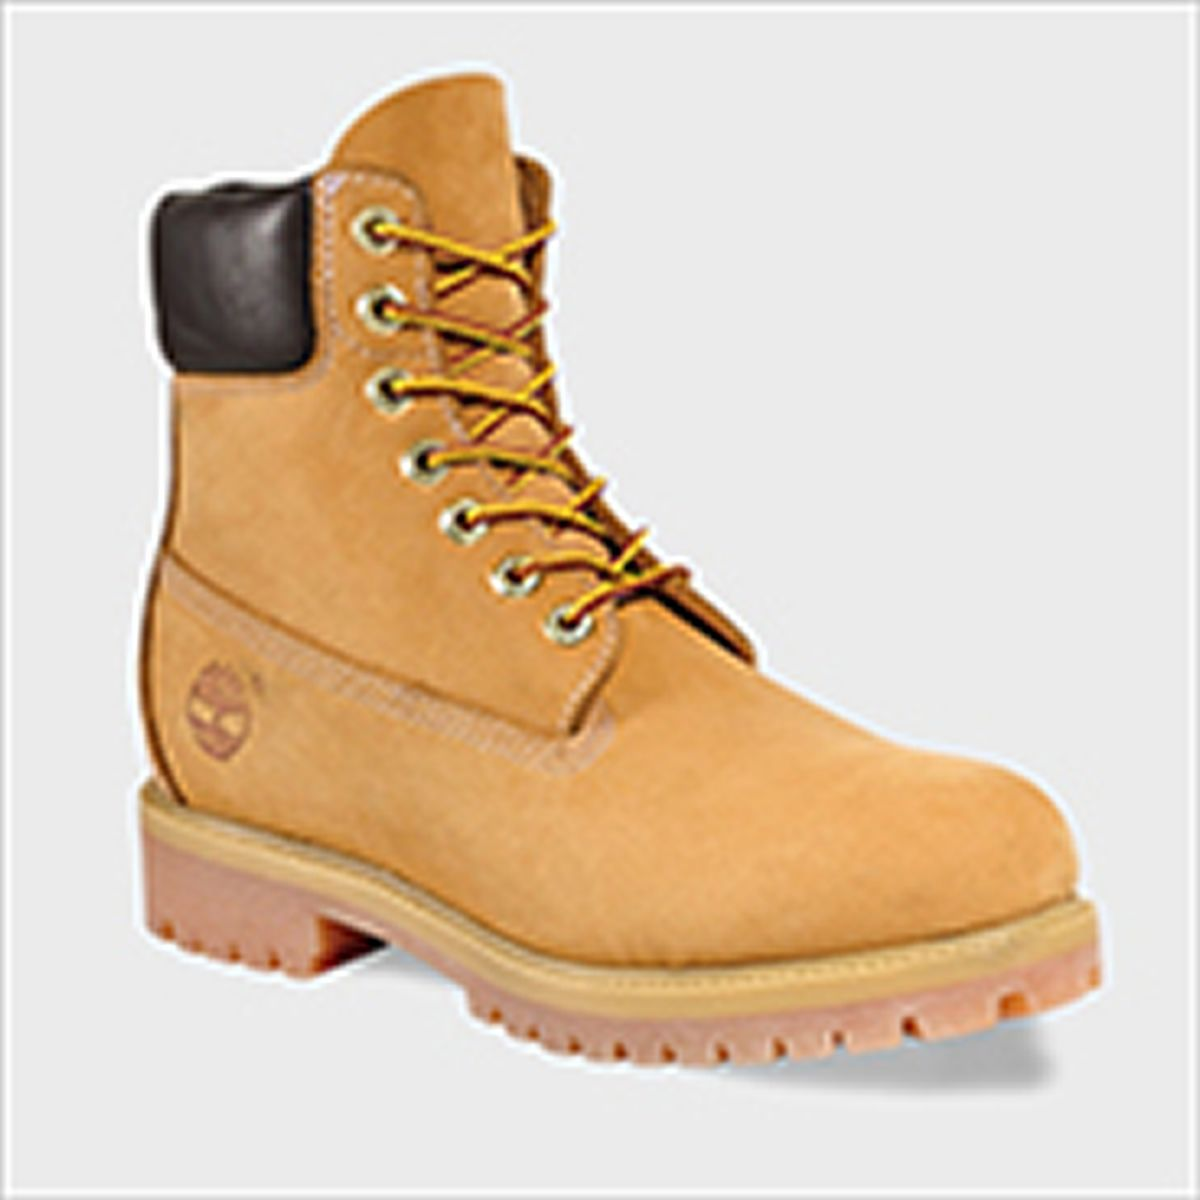 a7ac3d4ab3be Timberland Boots and Shoes For Men - Macy s